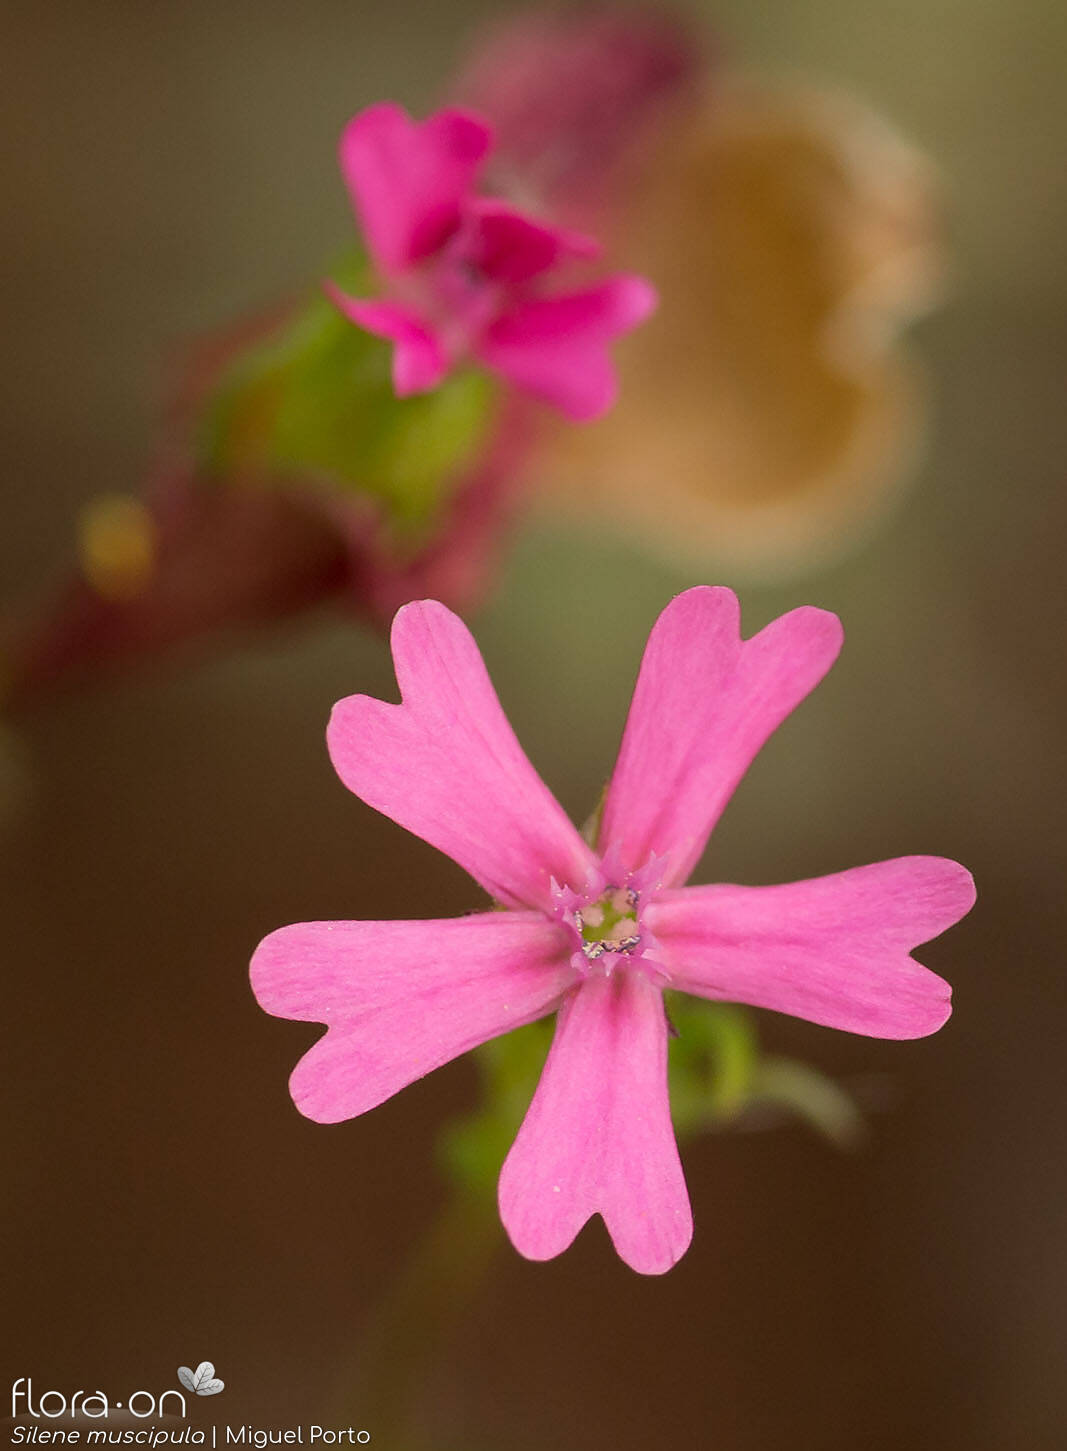 Silene muscipula - Flor (close-up) | Miguel Porto; CC BY-NC 4.0